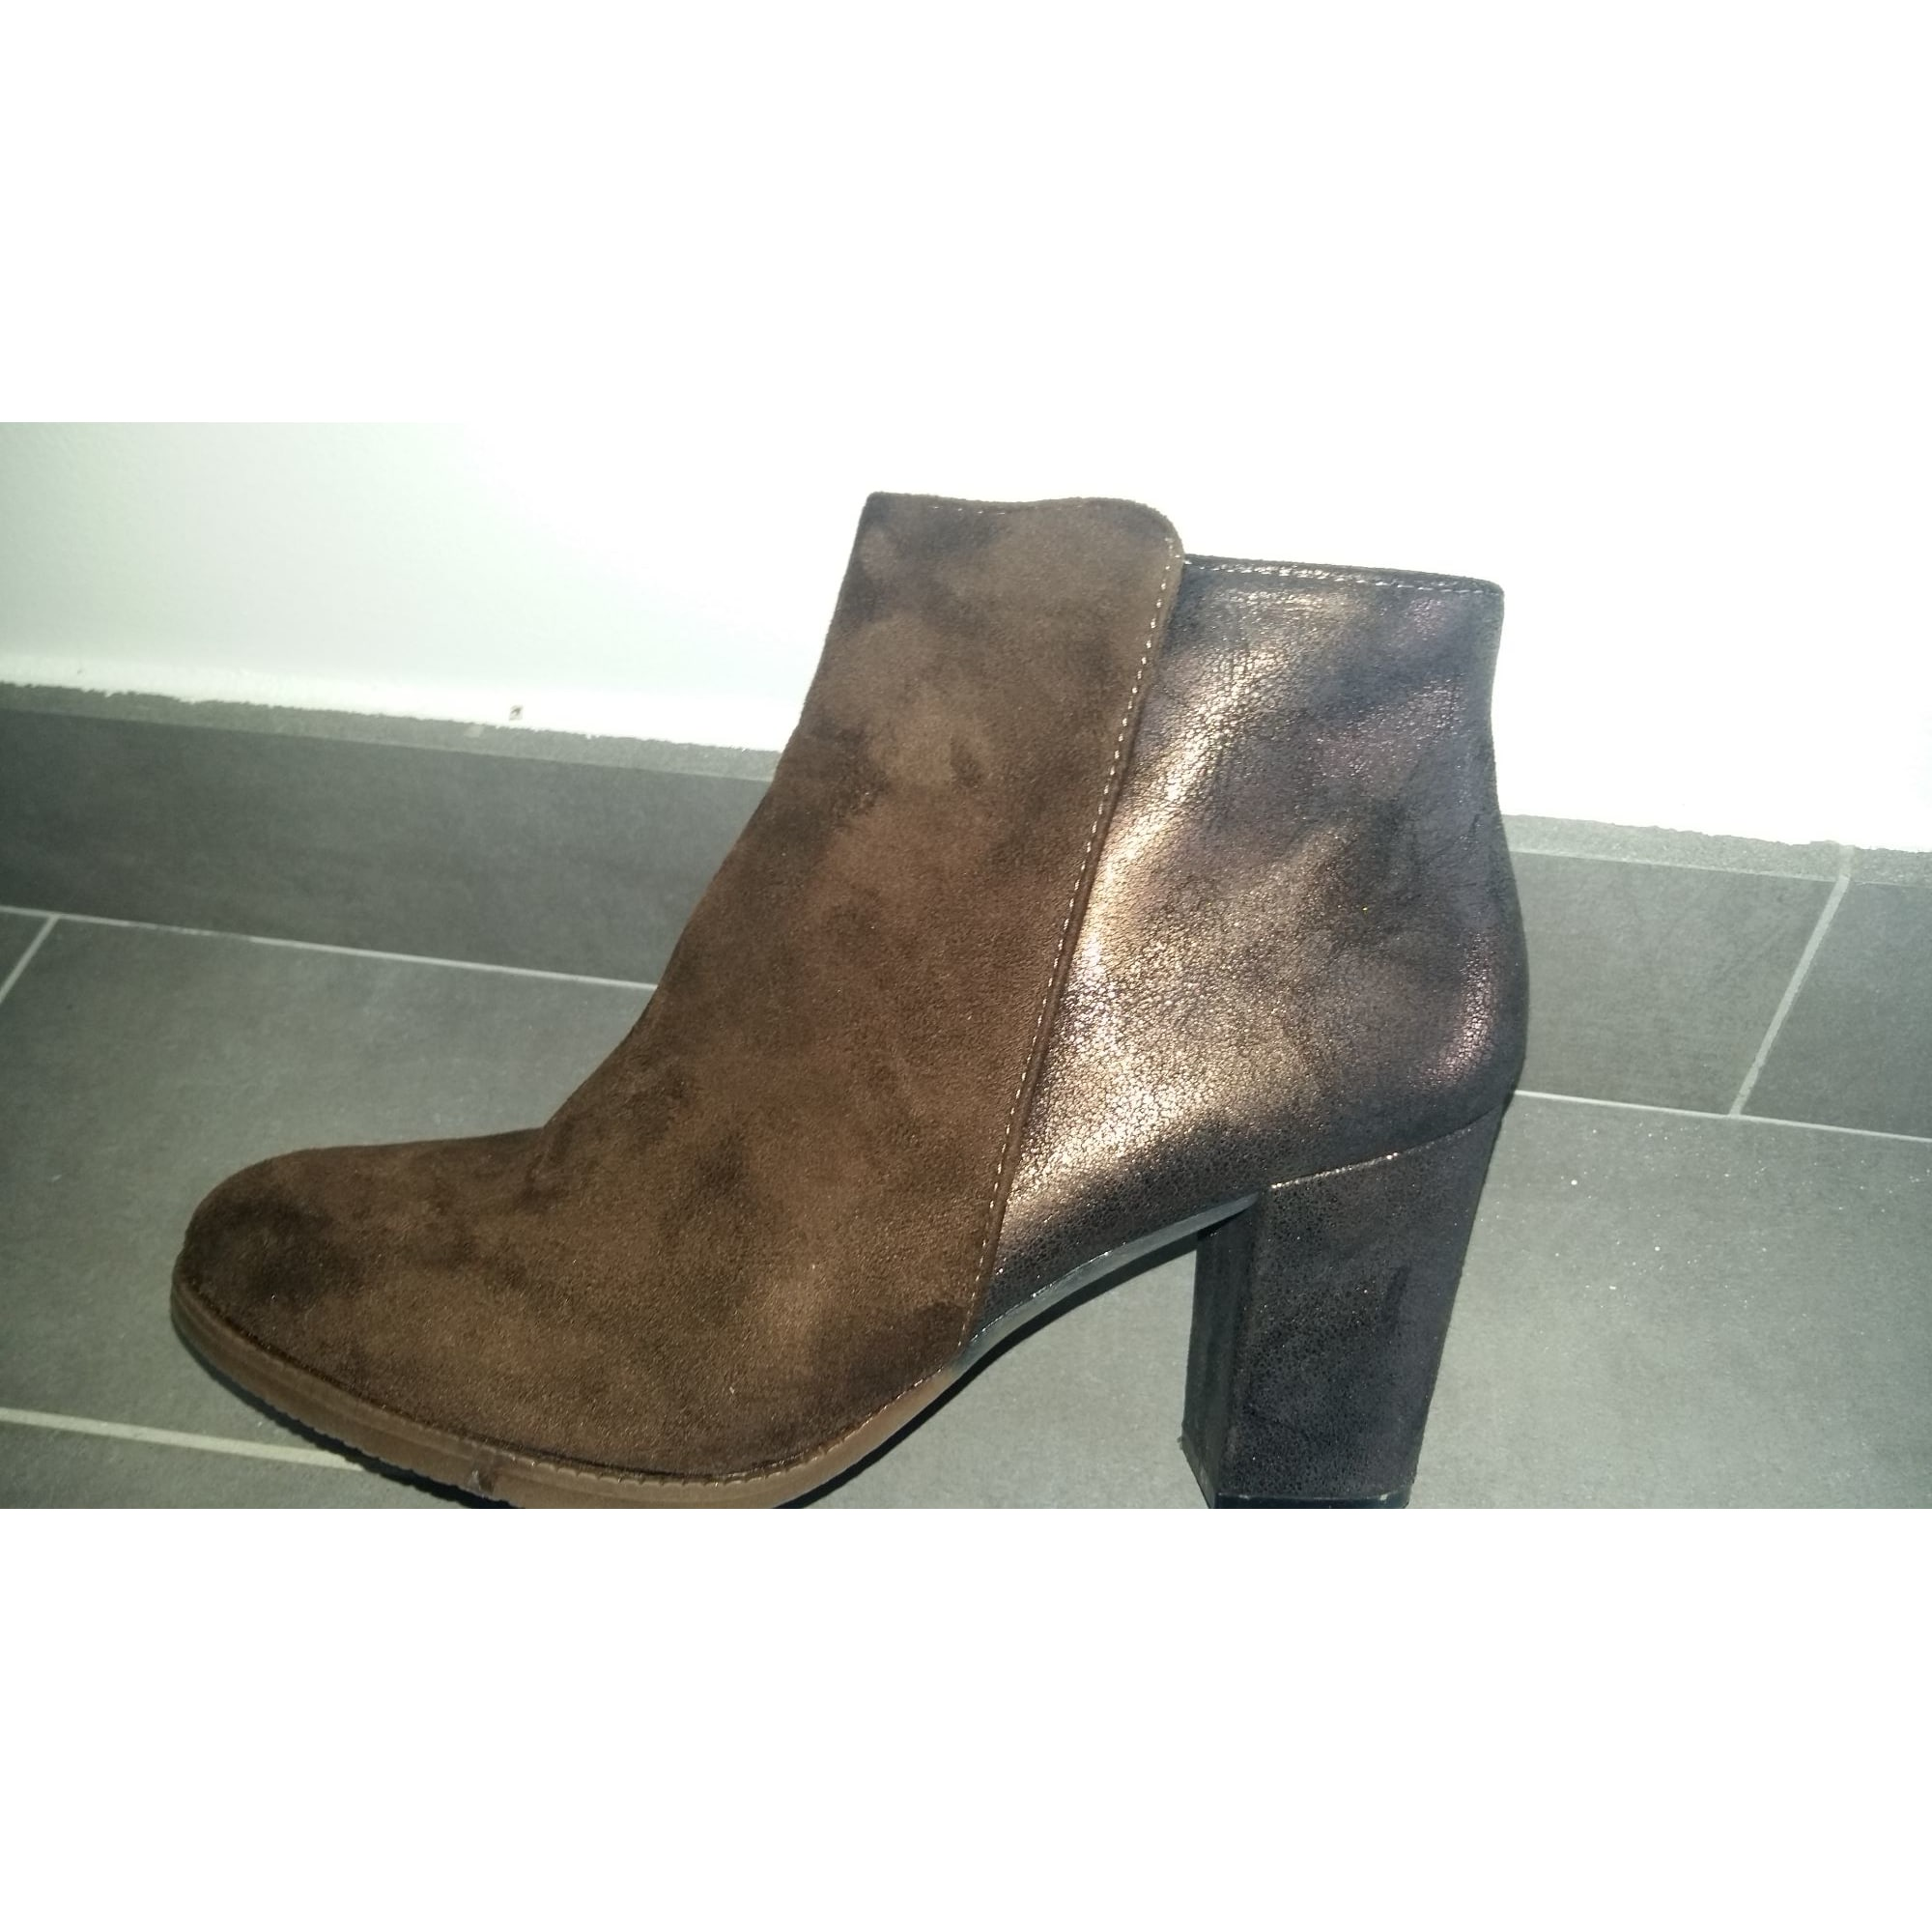 Talons Besson amp; Marron Mymi Par Bottines Low À Vendu 26 40 Boots nx6nIX0q